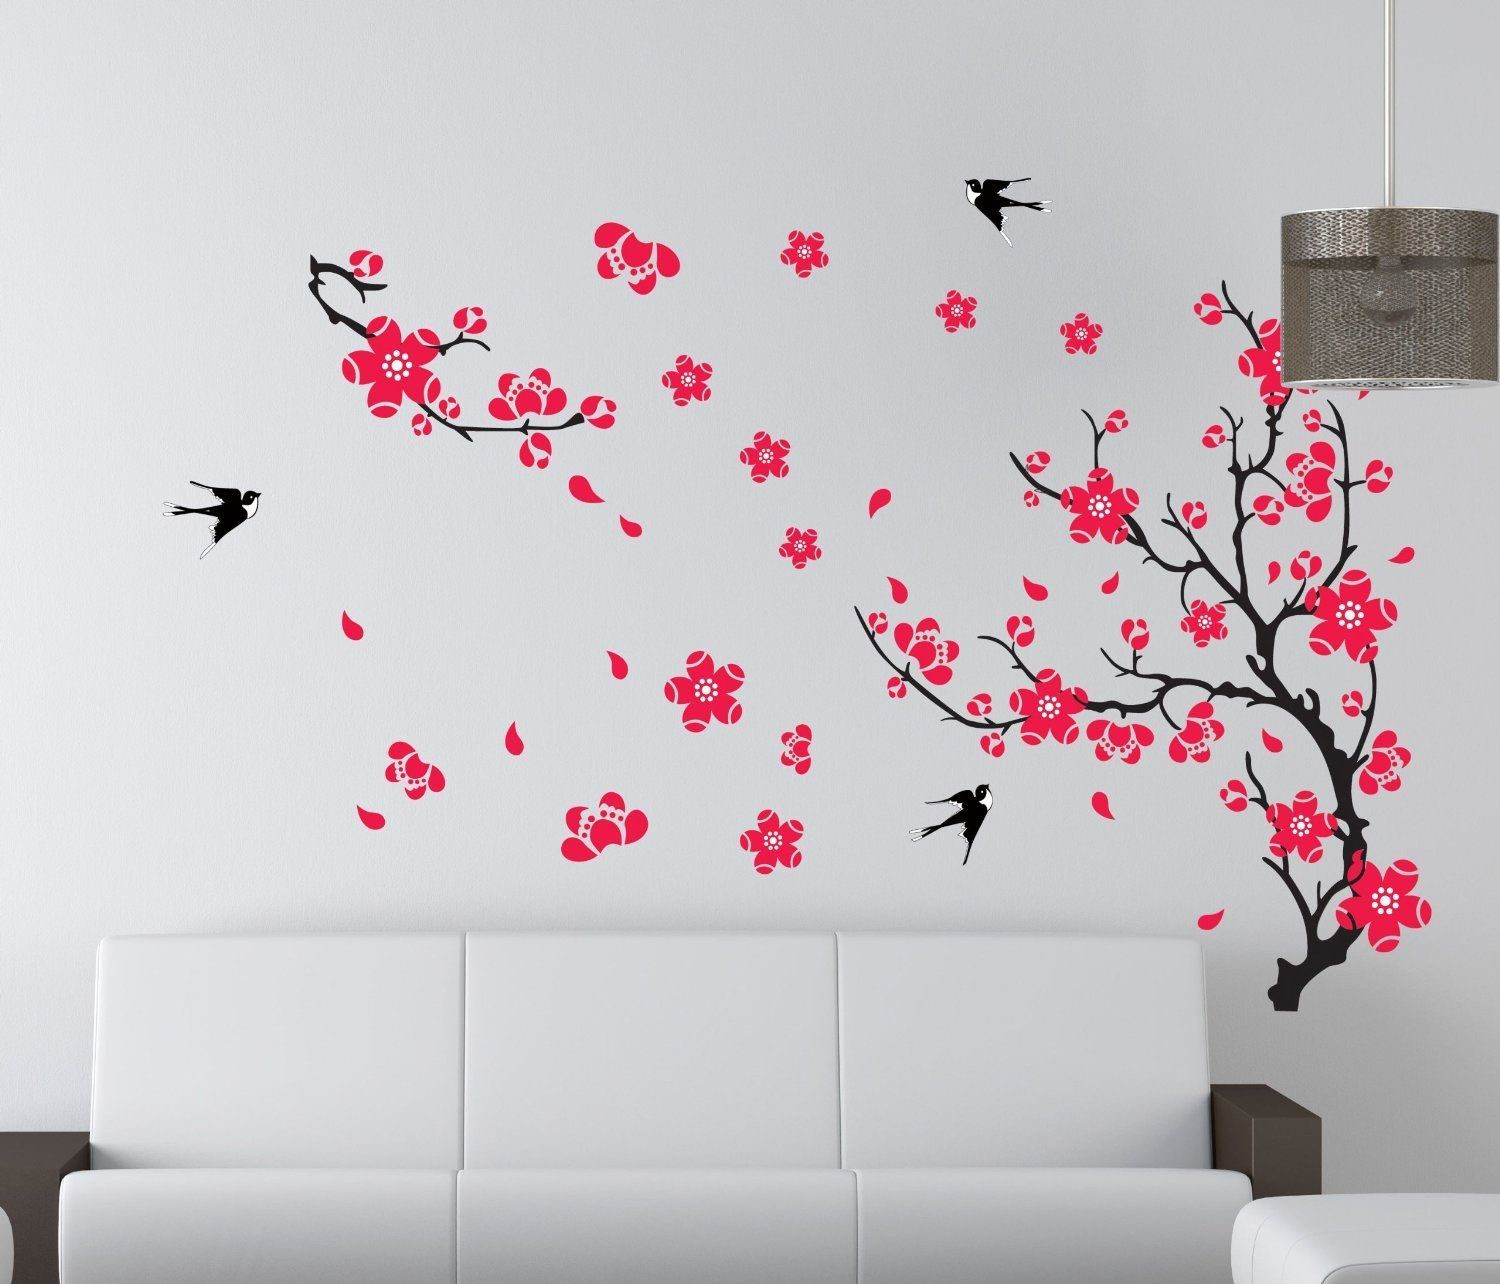 Large plum blossom flower removable wall sticker decor decal large plum blossom flower removable wall sticker decor decal amipublicfo Image collections